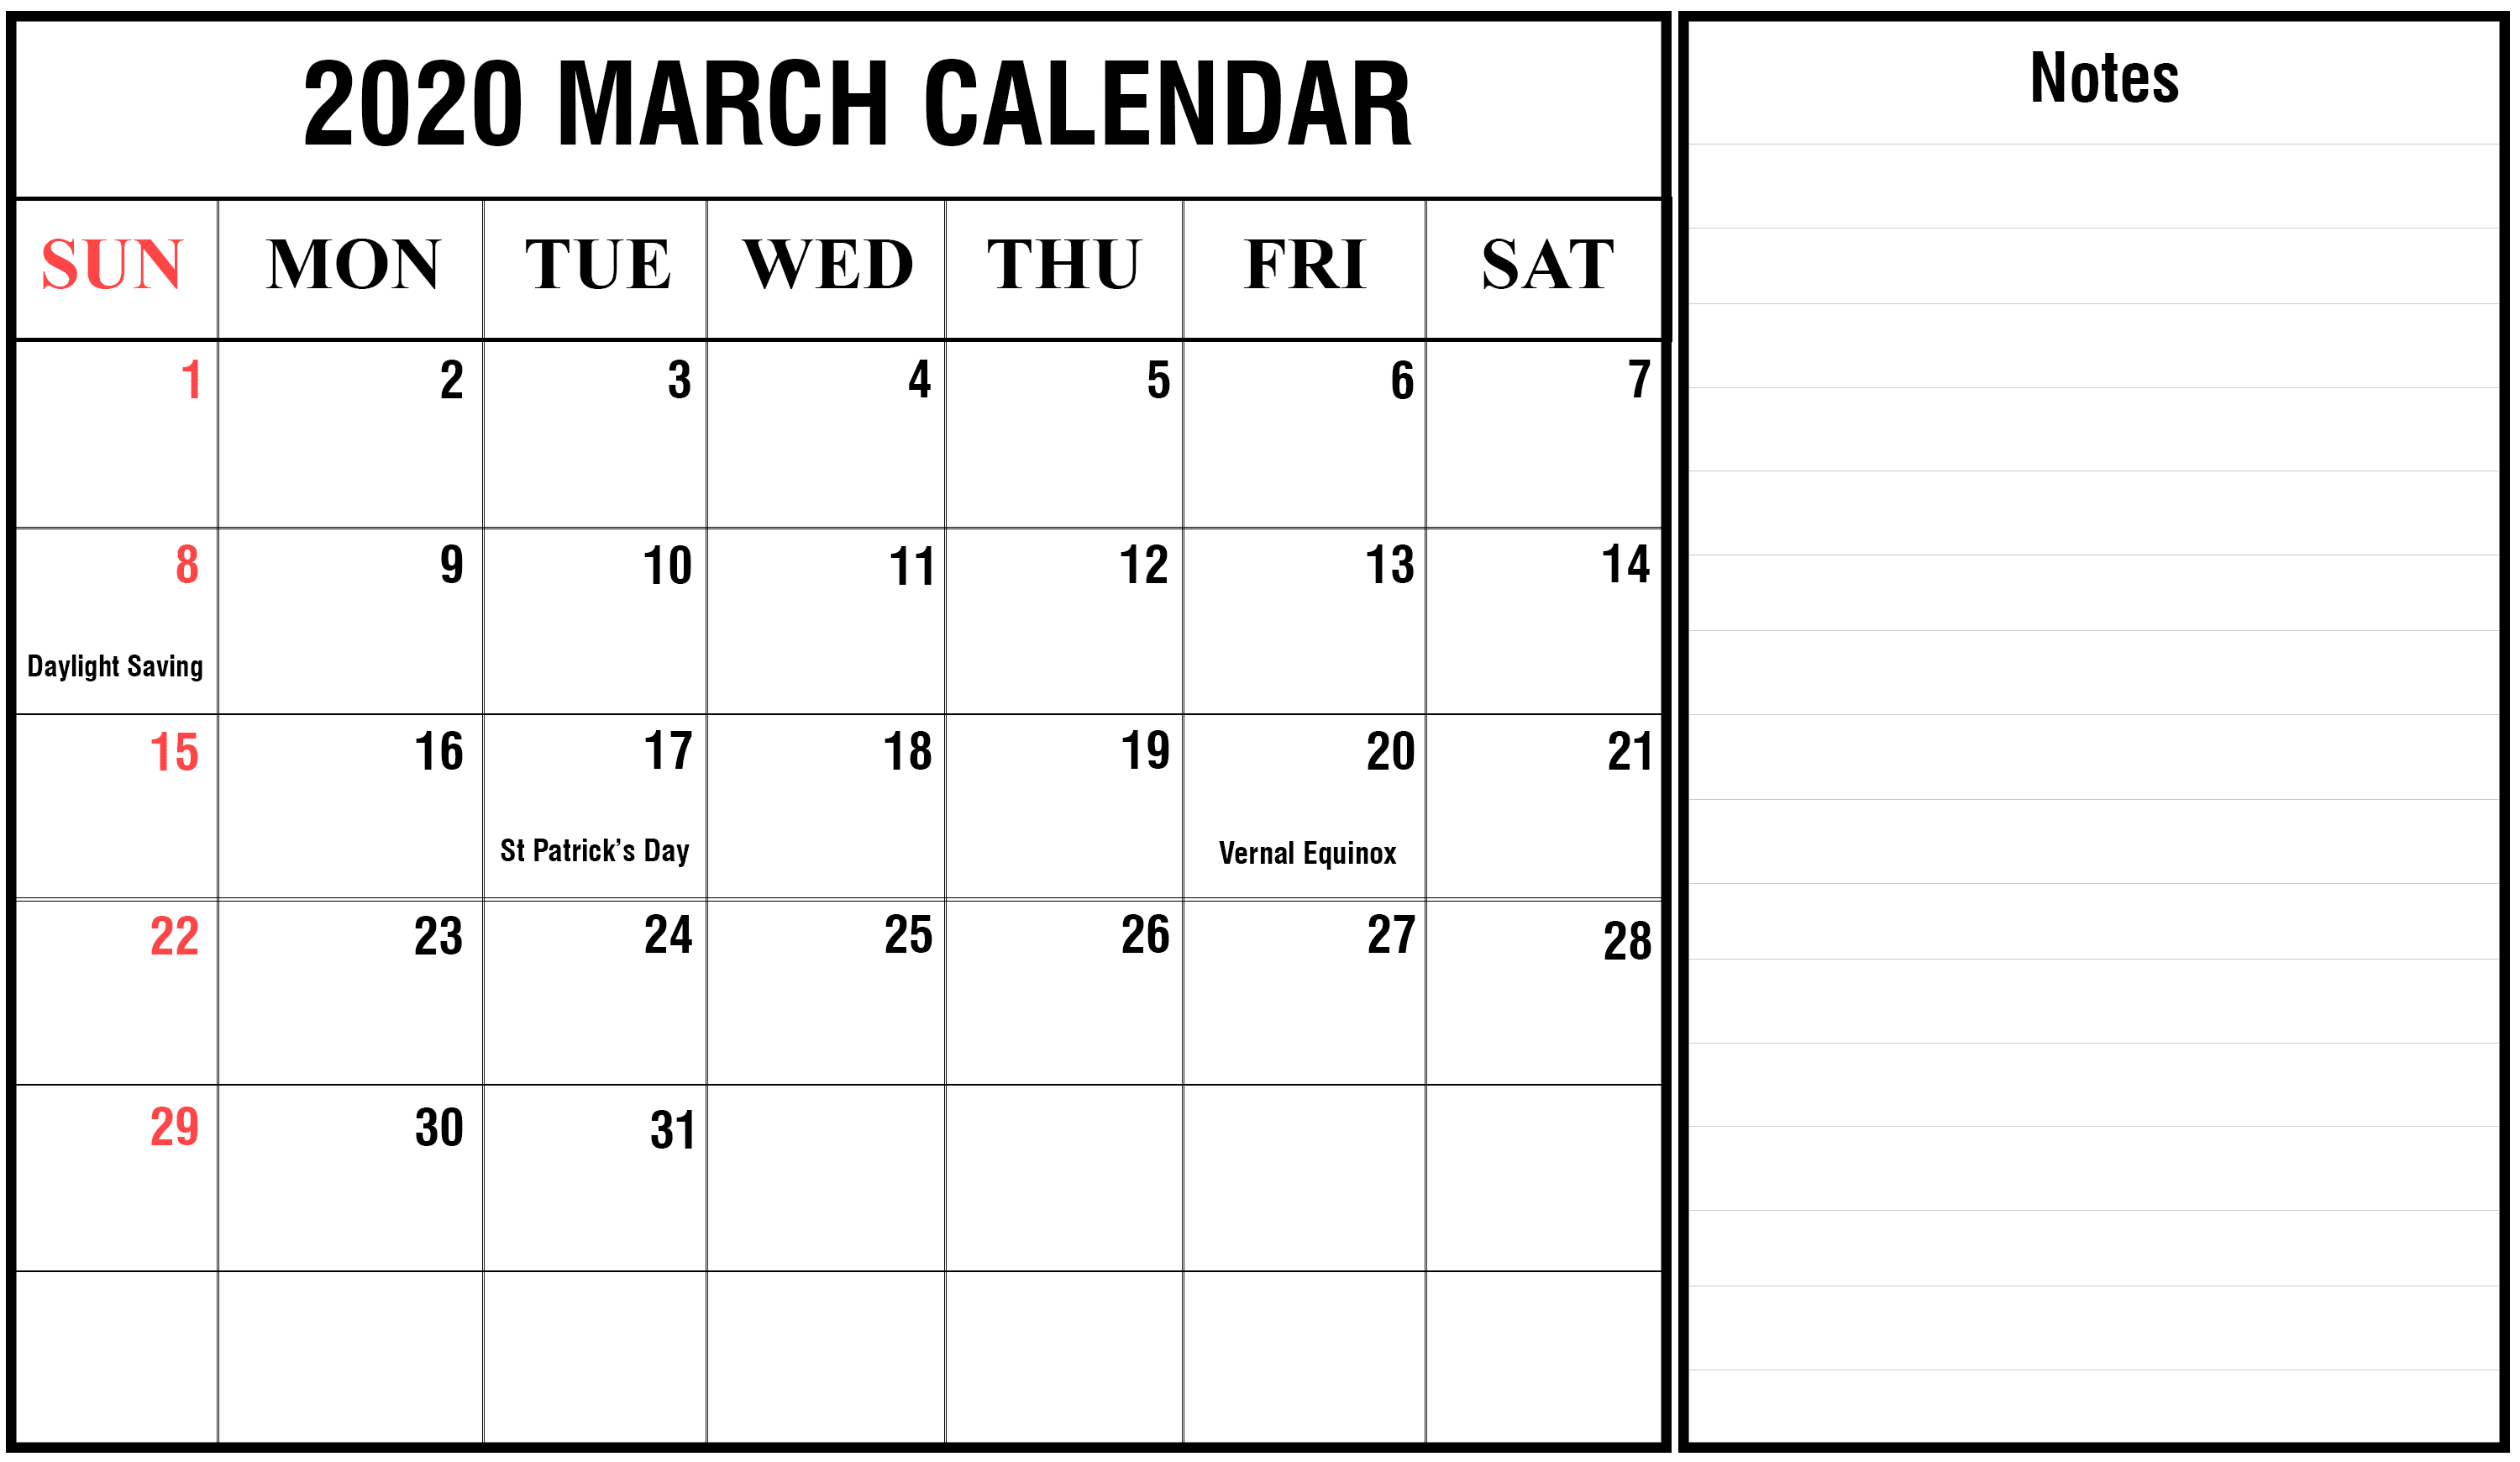 Free Editable March 2020 Calendar with Notes